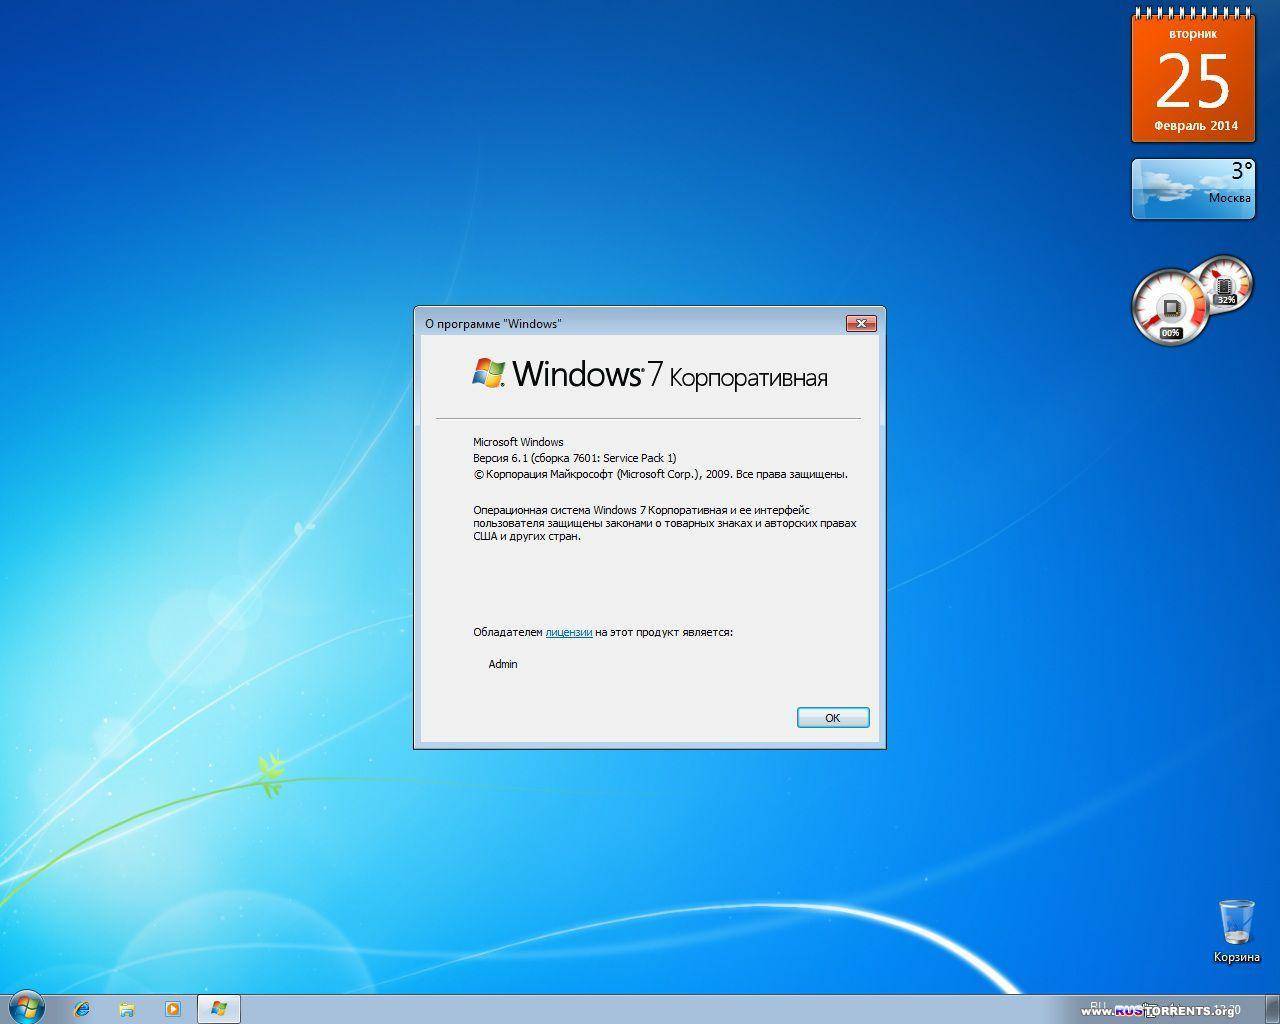 Windows 7 with SP1 �86/�64 U Russian All editions AIO Nikolay151 RUS ��� �������: 2014